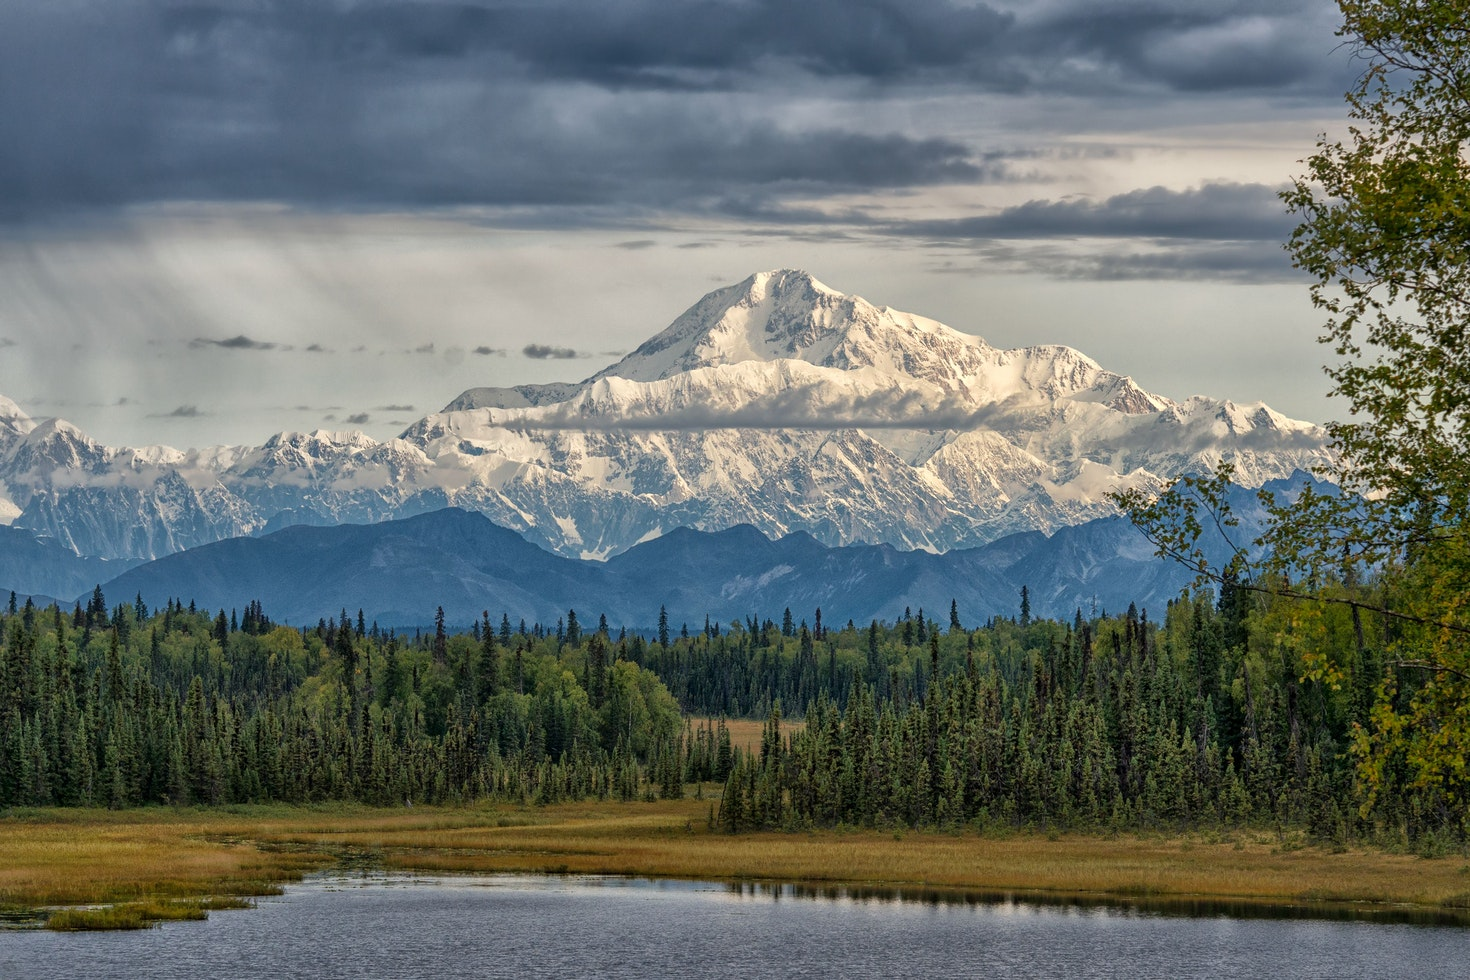 Denali (formerly known as McKinley) is the highest peak on the North American continent © Phillip Kuntz / 500px